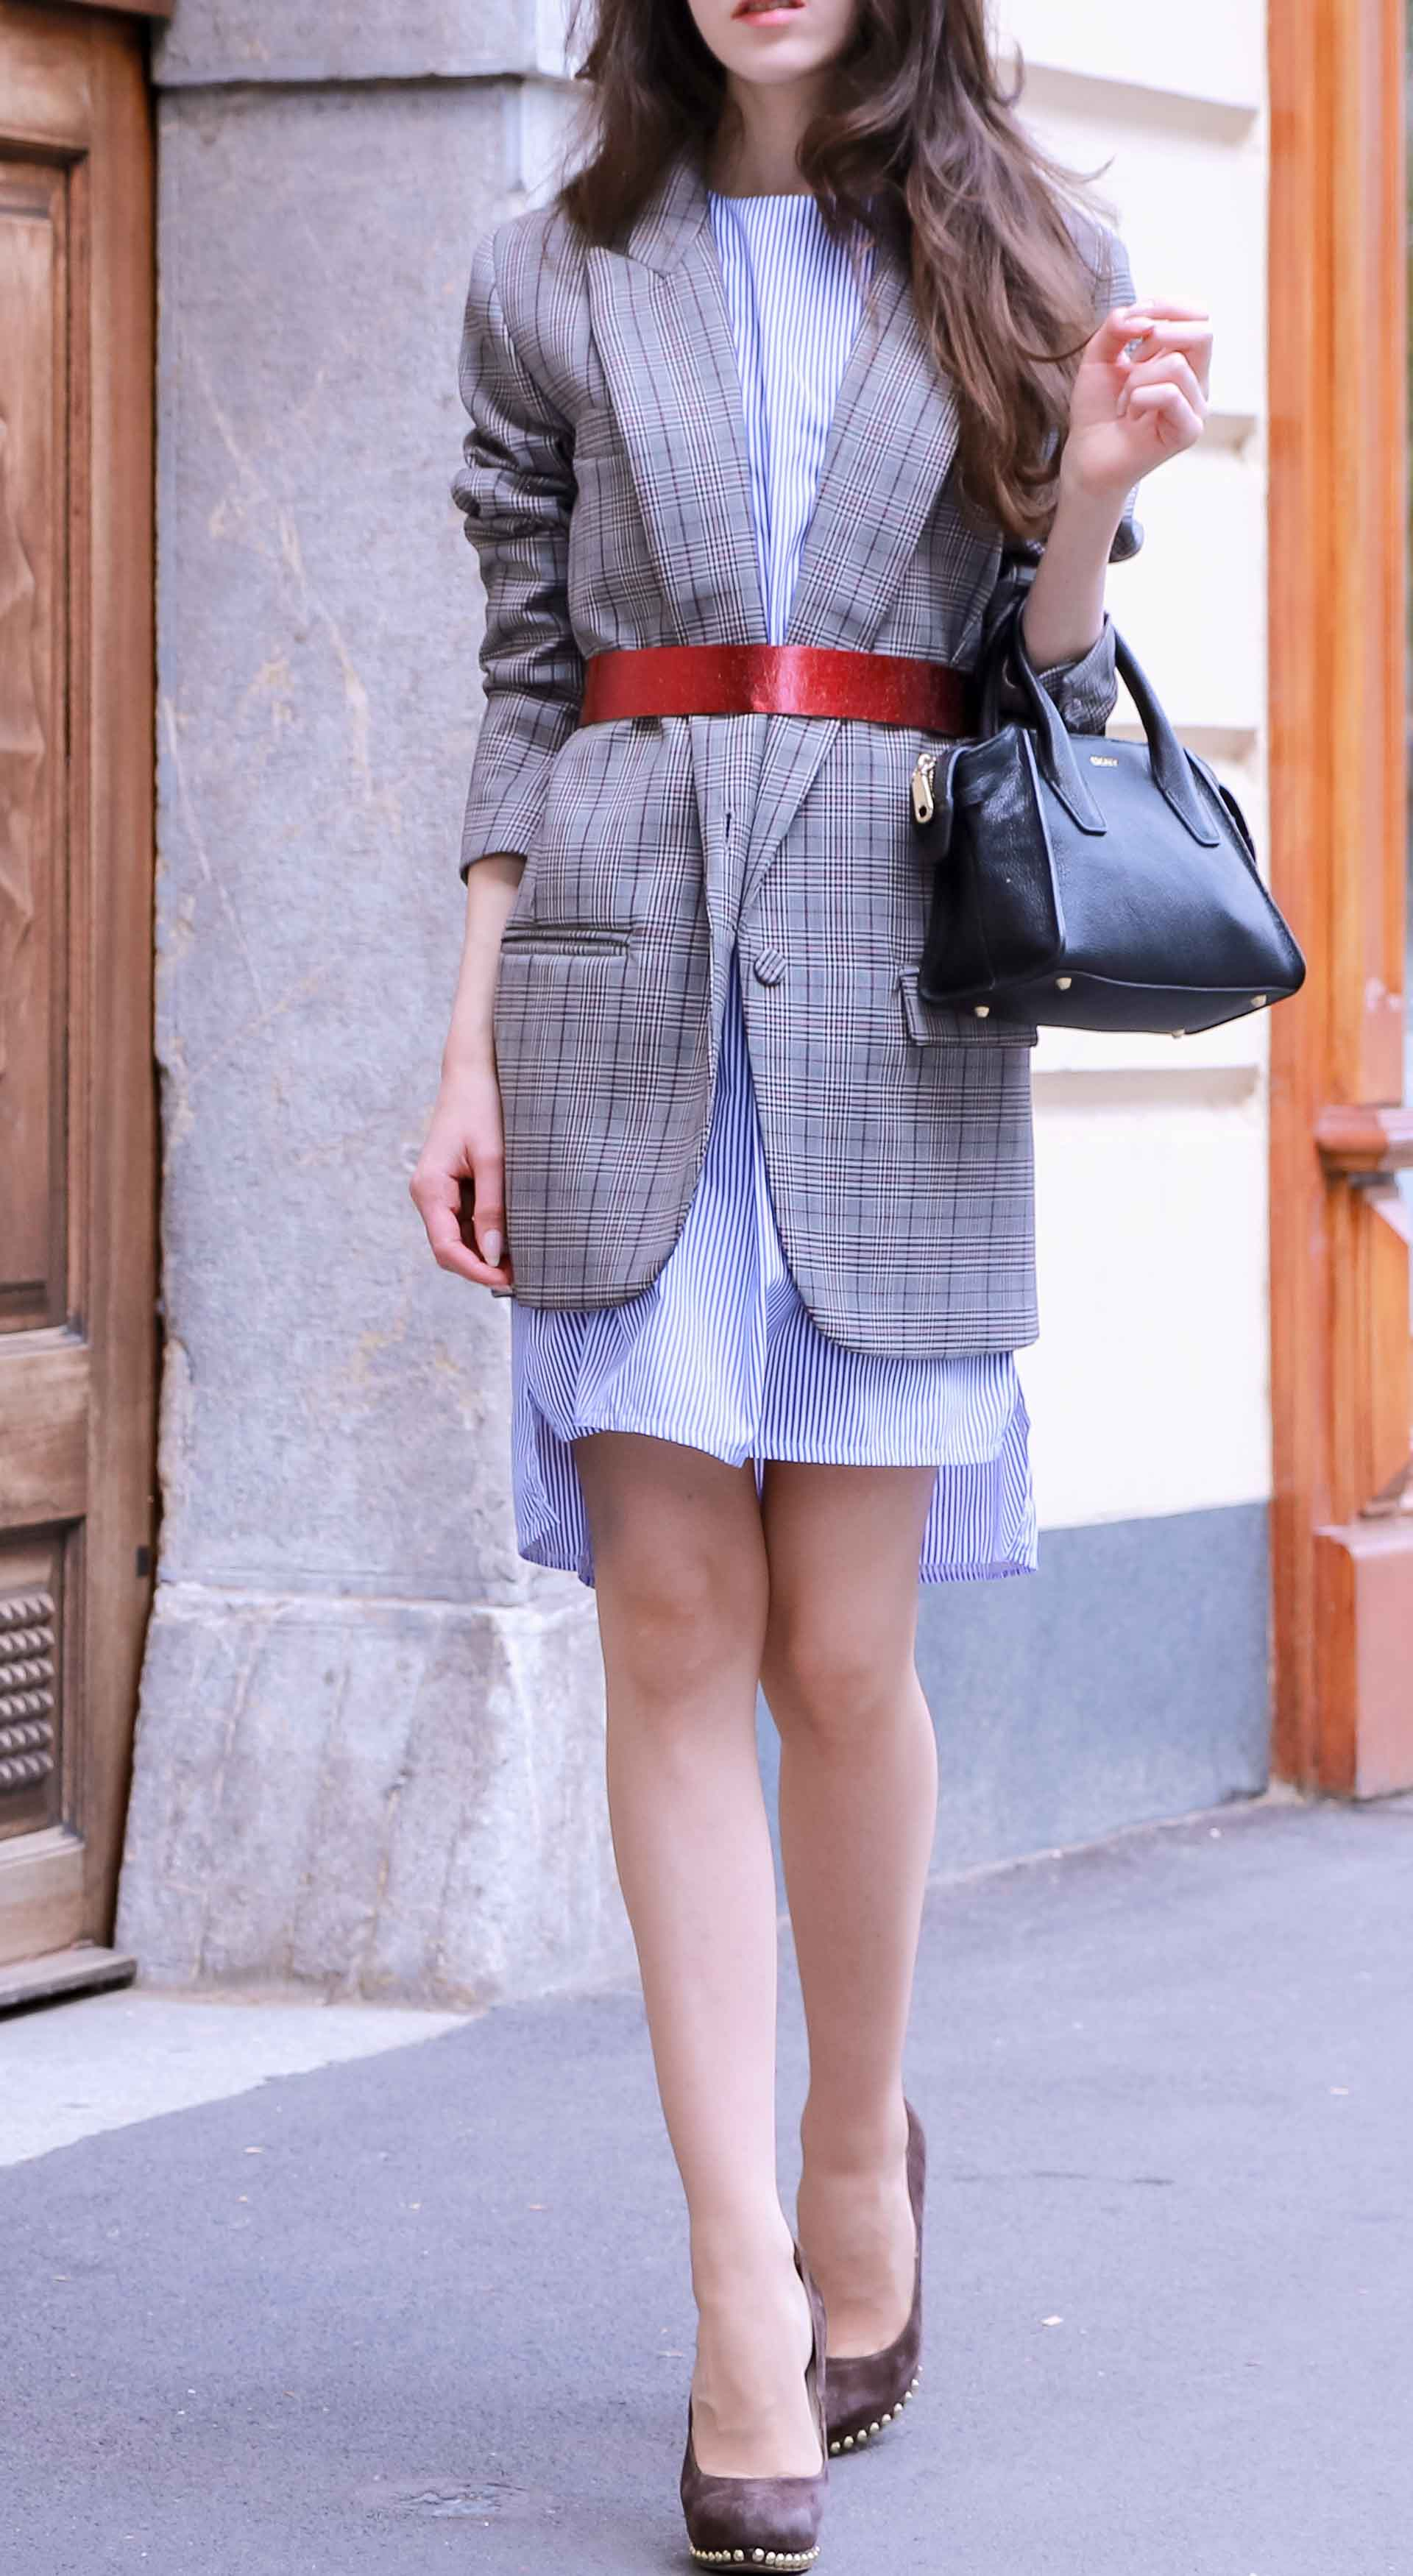 Veronika Lipar Fashion Blogger of Brunette from Wall Street dressed in Erika Cavallini plaid blazer, blue striped shirtdress, red belt, brown court shoes, black top handle bag, Le Specs black sunglasses